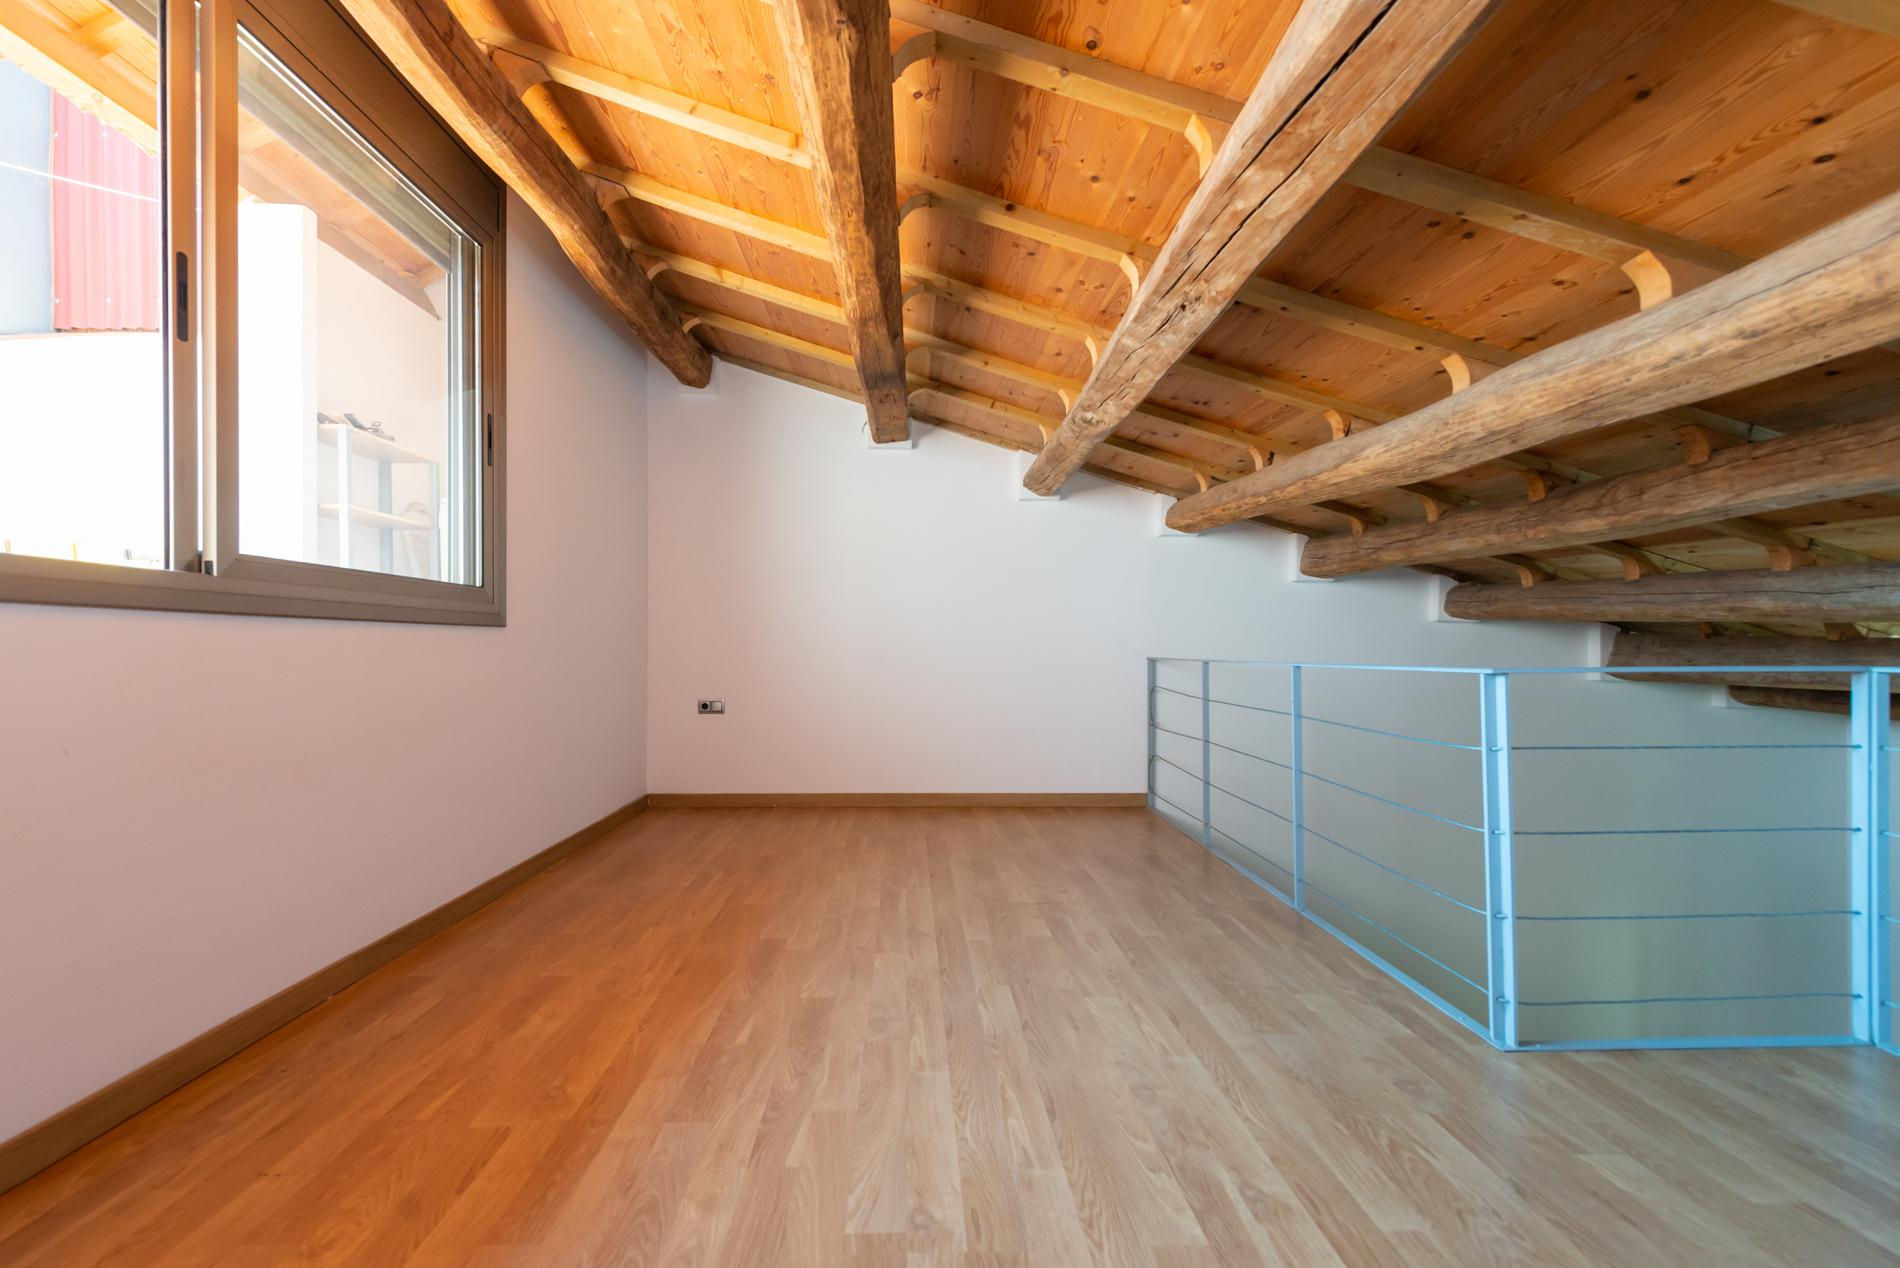 239277 Semi-detached house for sale in Sants-Montjuïc, Sants 18